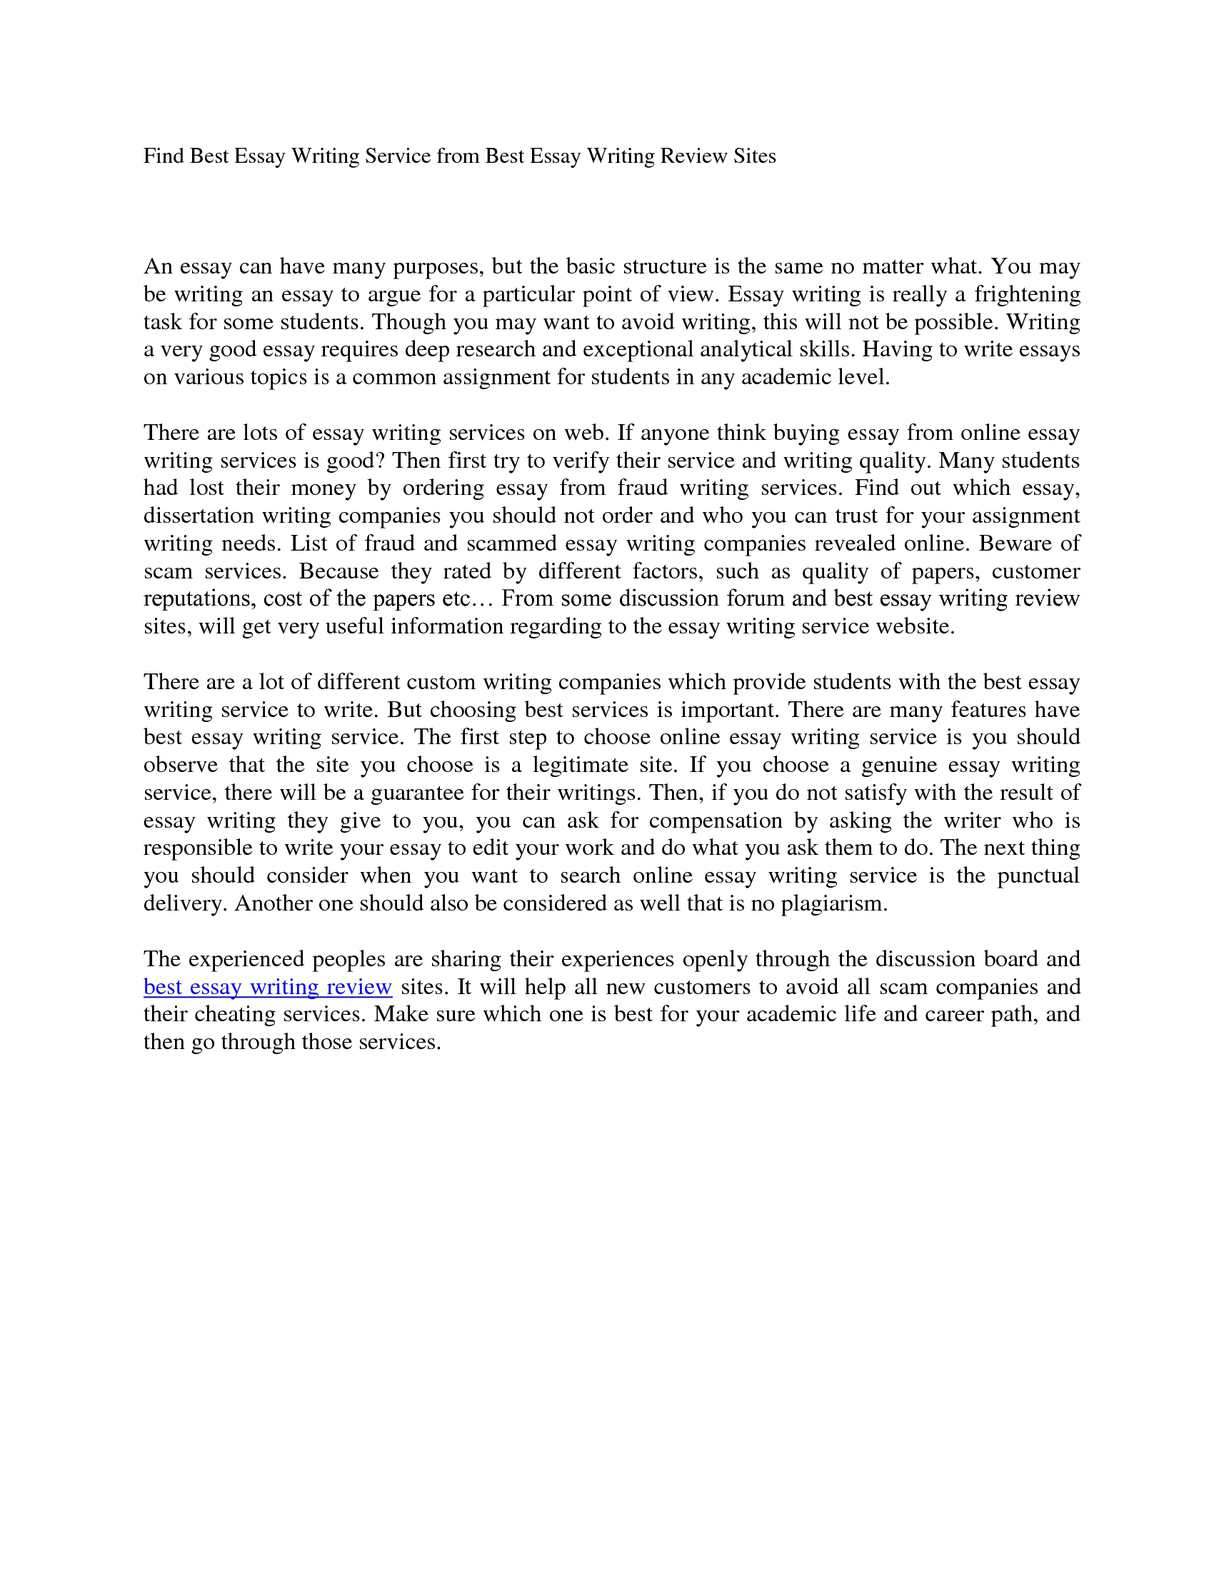 Cheap personal statement editing for hire for school